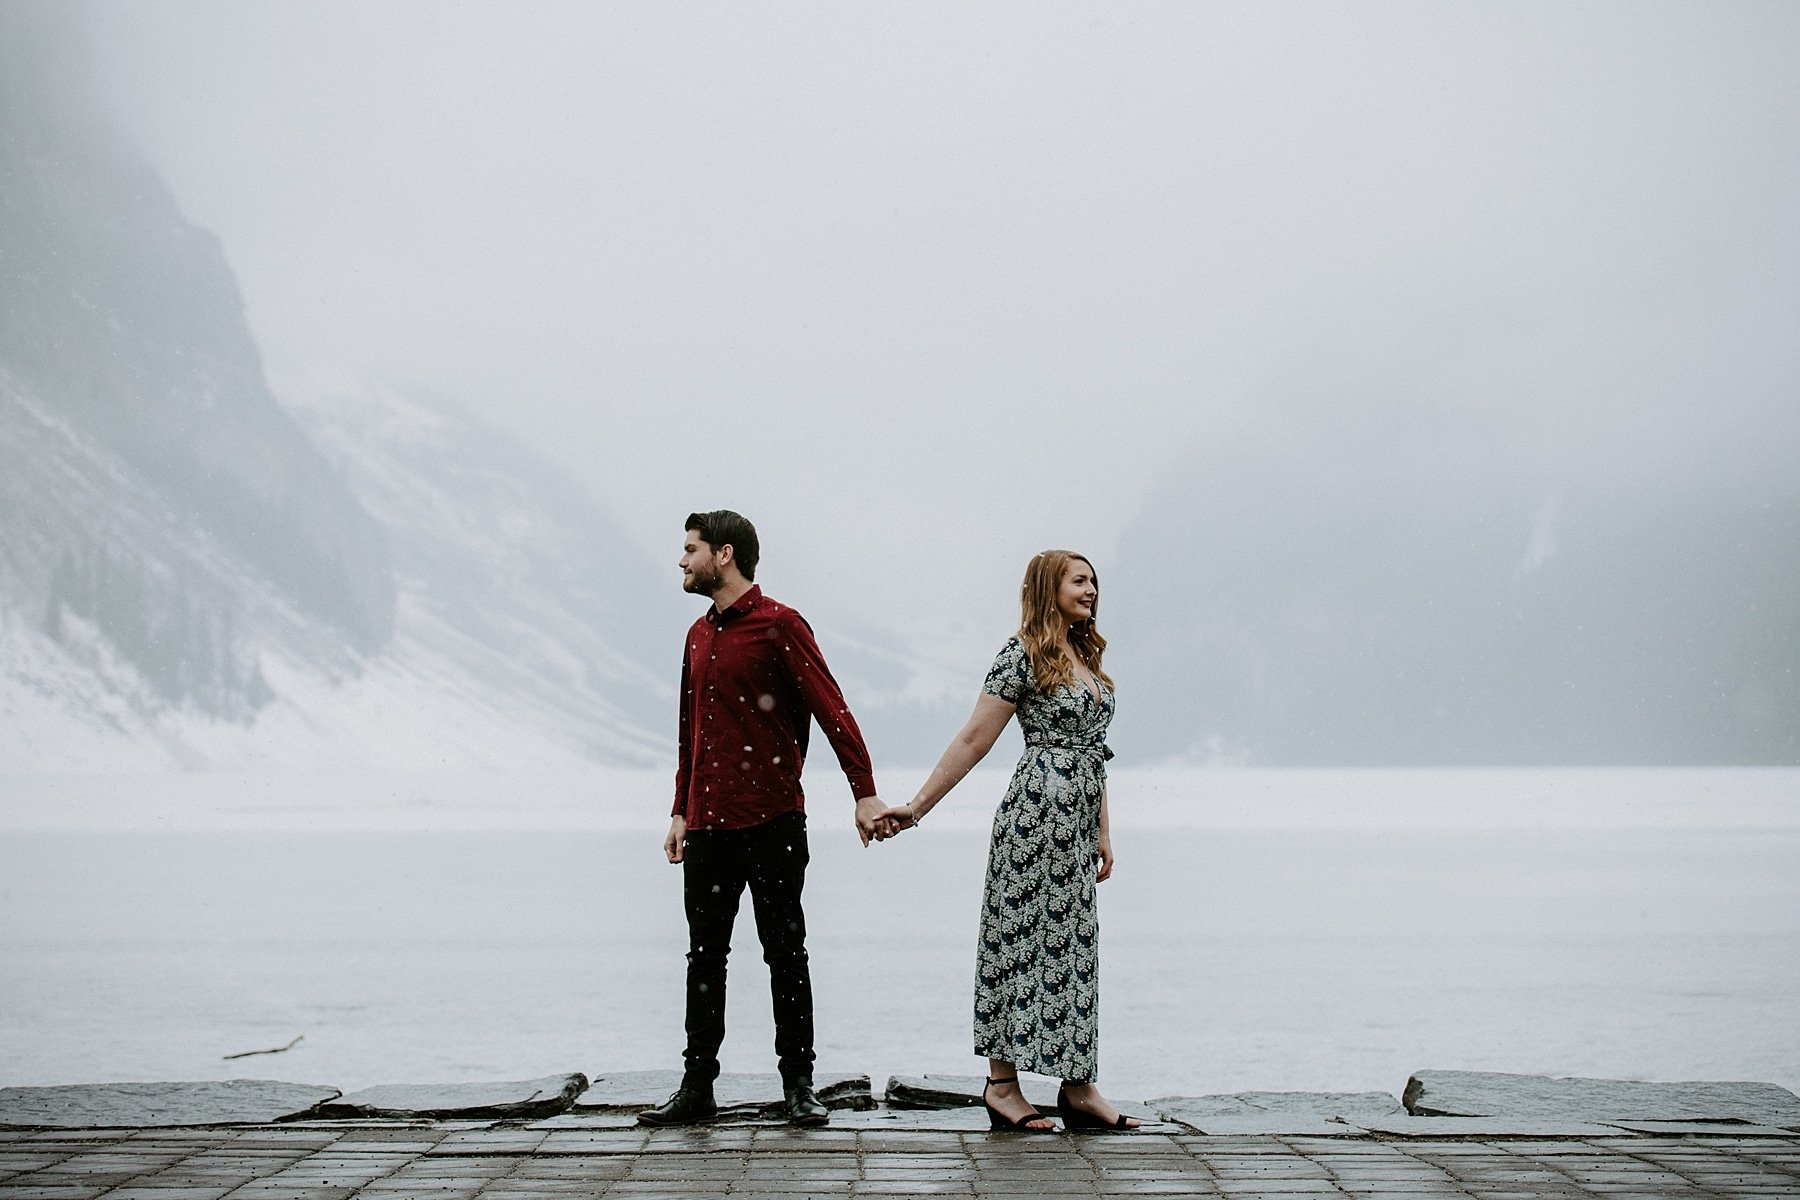 Lake louise engagement photos in front of the lake